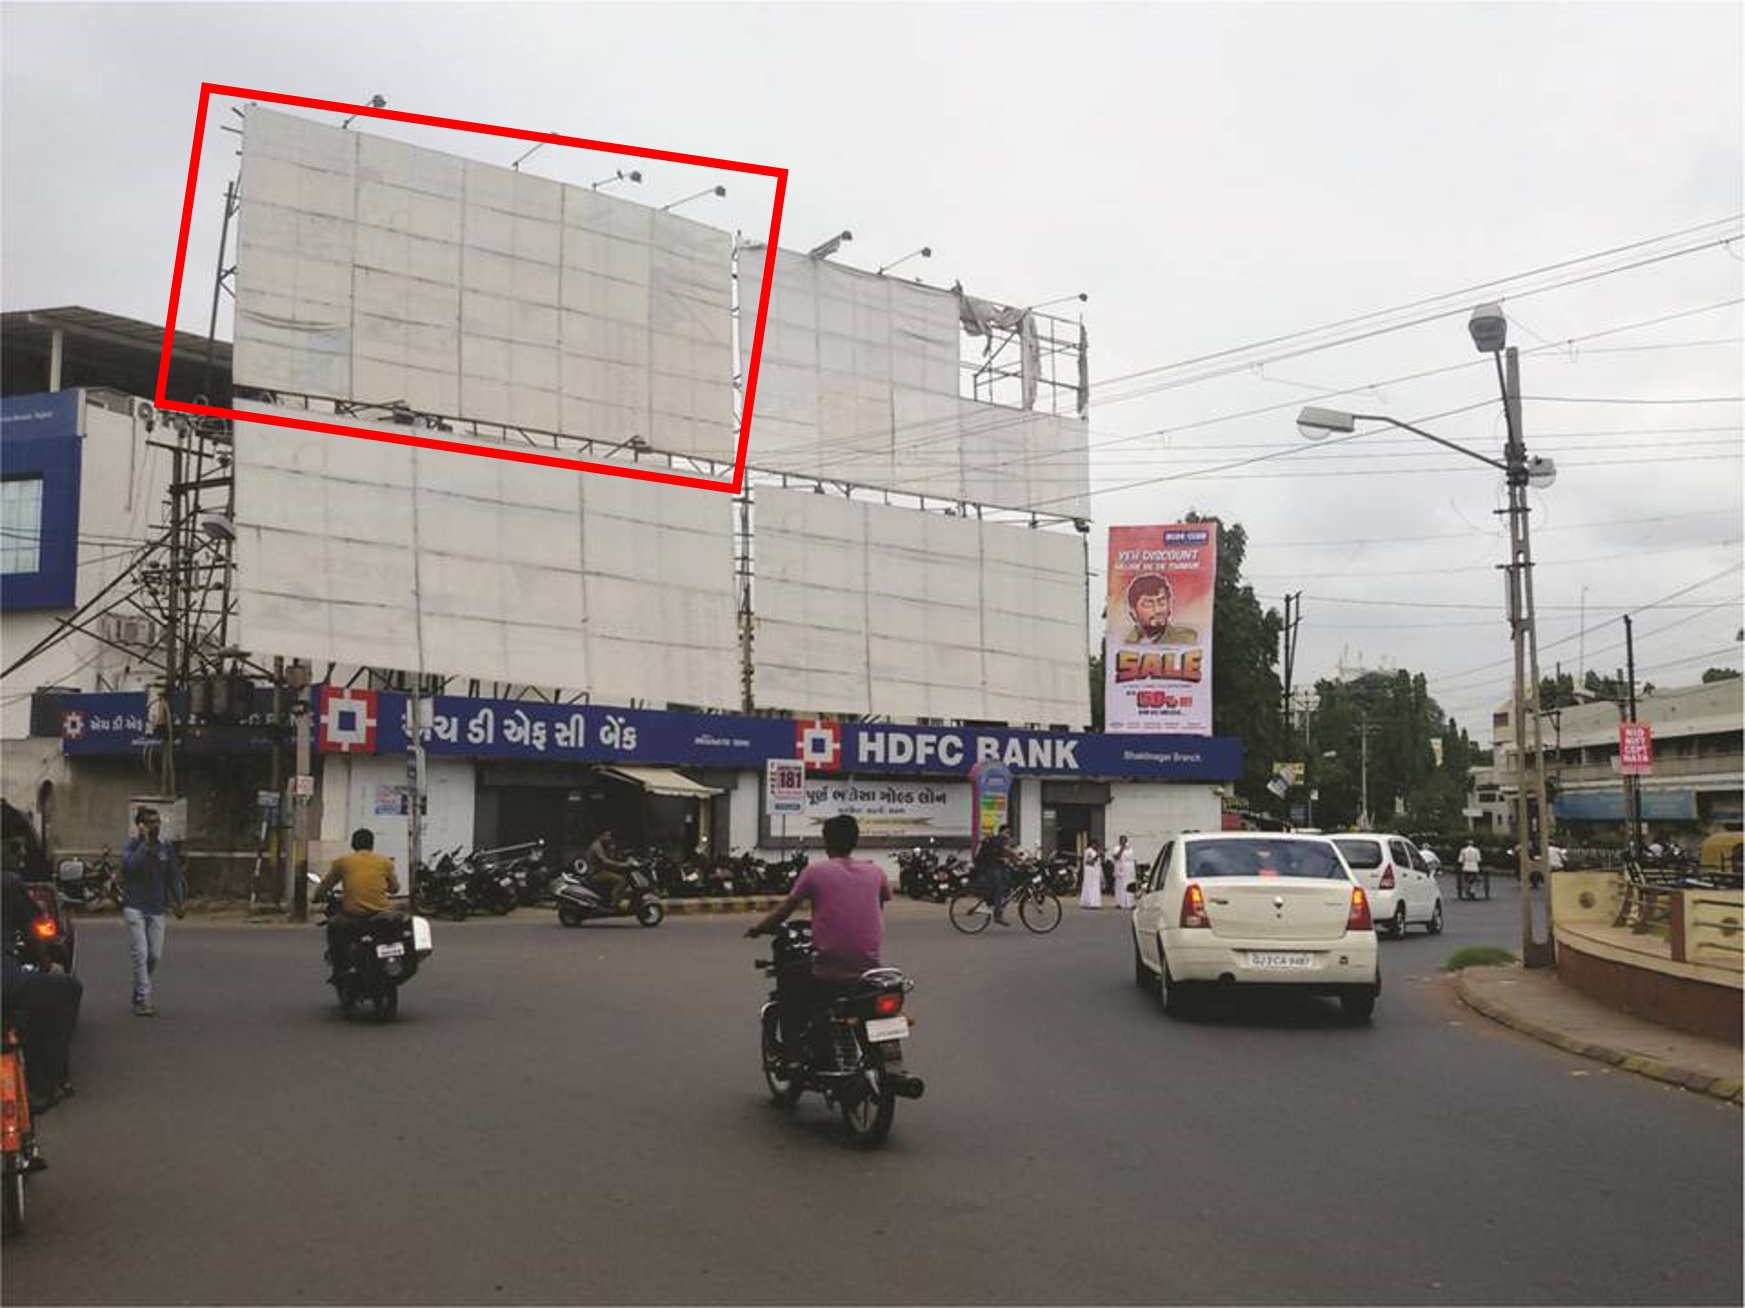 Bhaktinagar Circle, Hdfc Bank, Rajkot